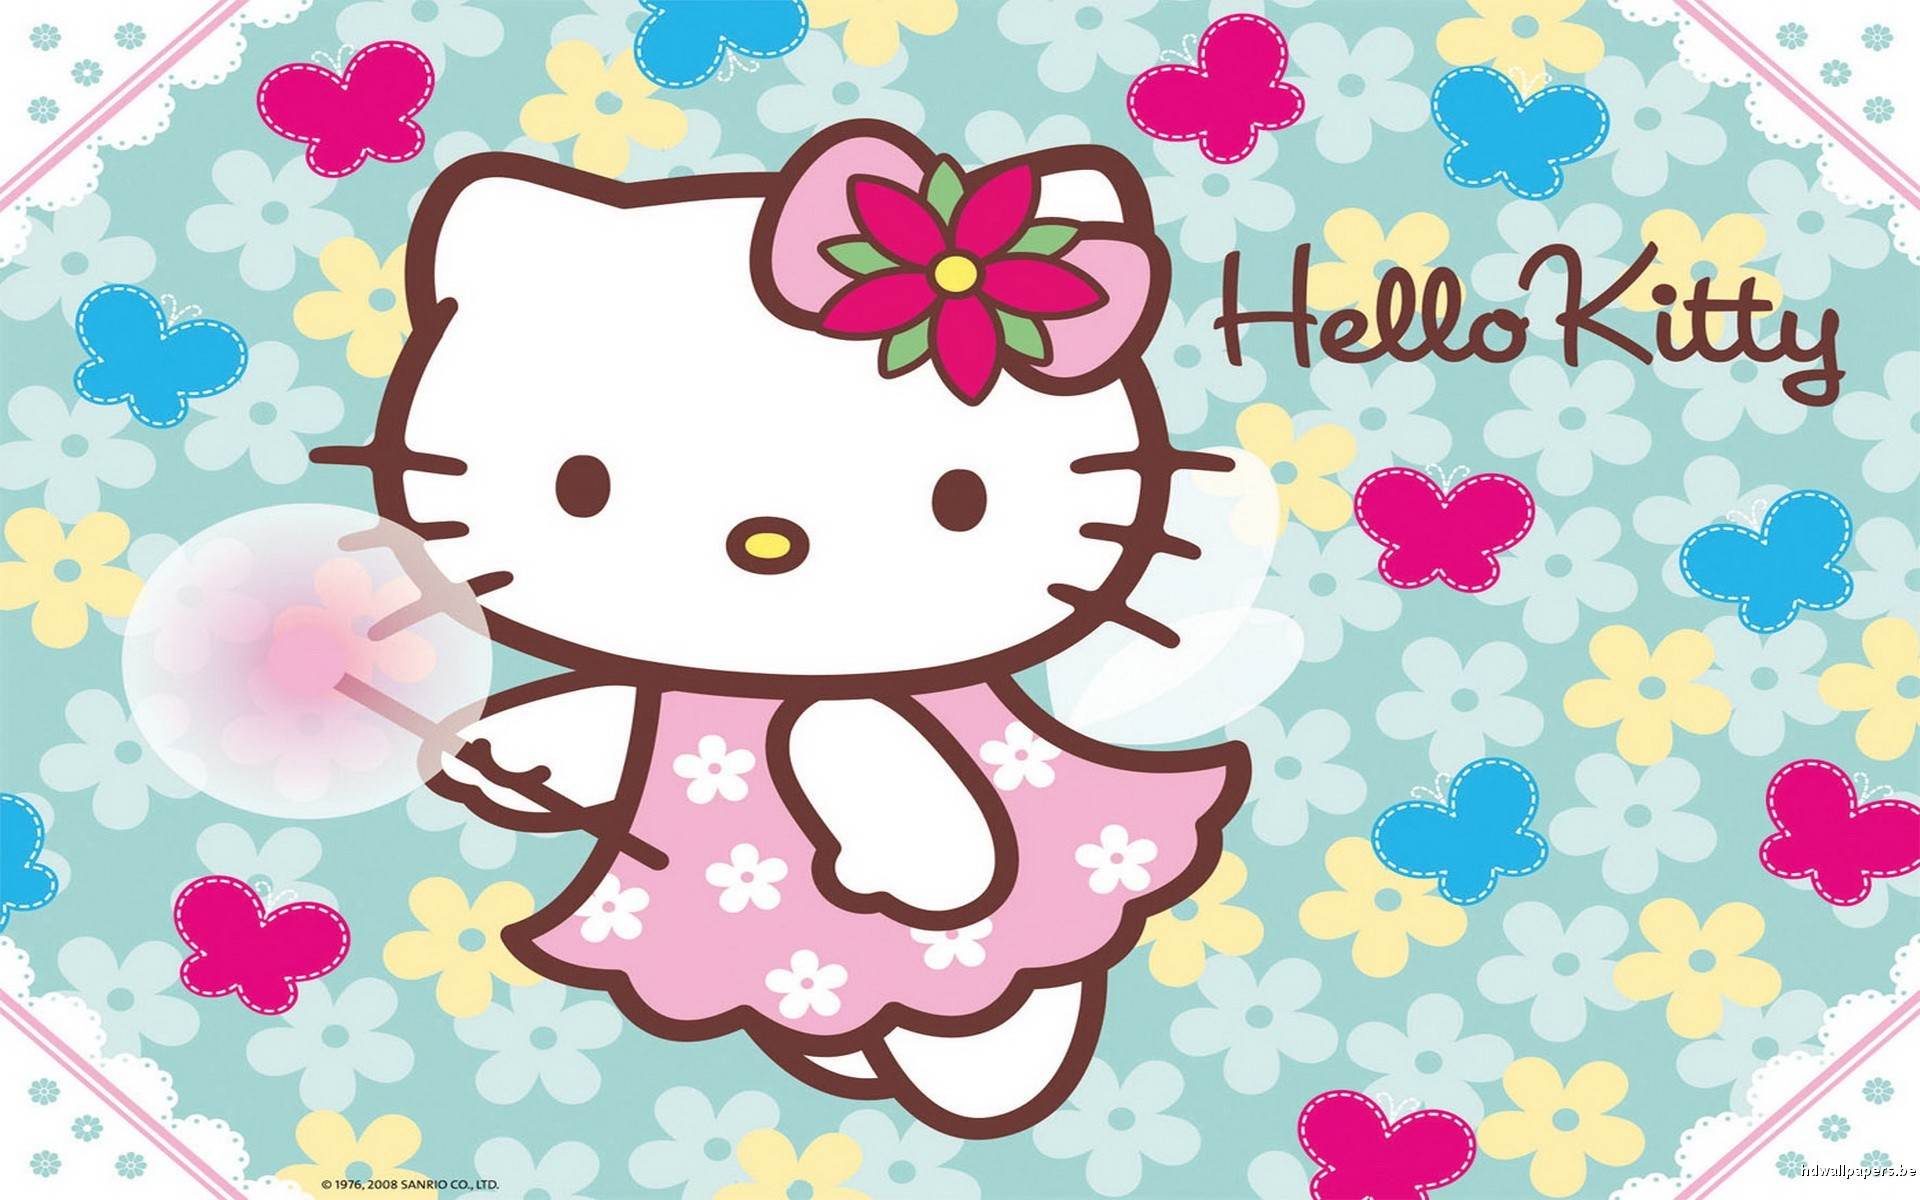 Hello kitty screensavers and wallpapers wallpapertag - Wallpaper hello kitty full hd ...